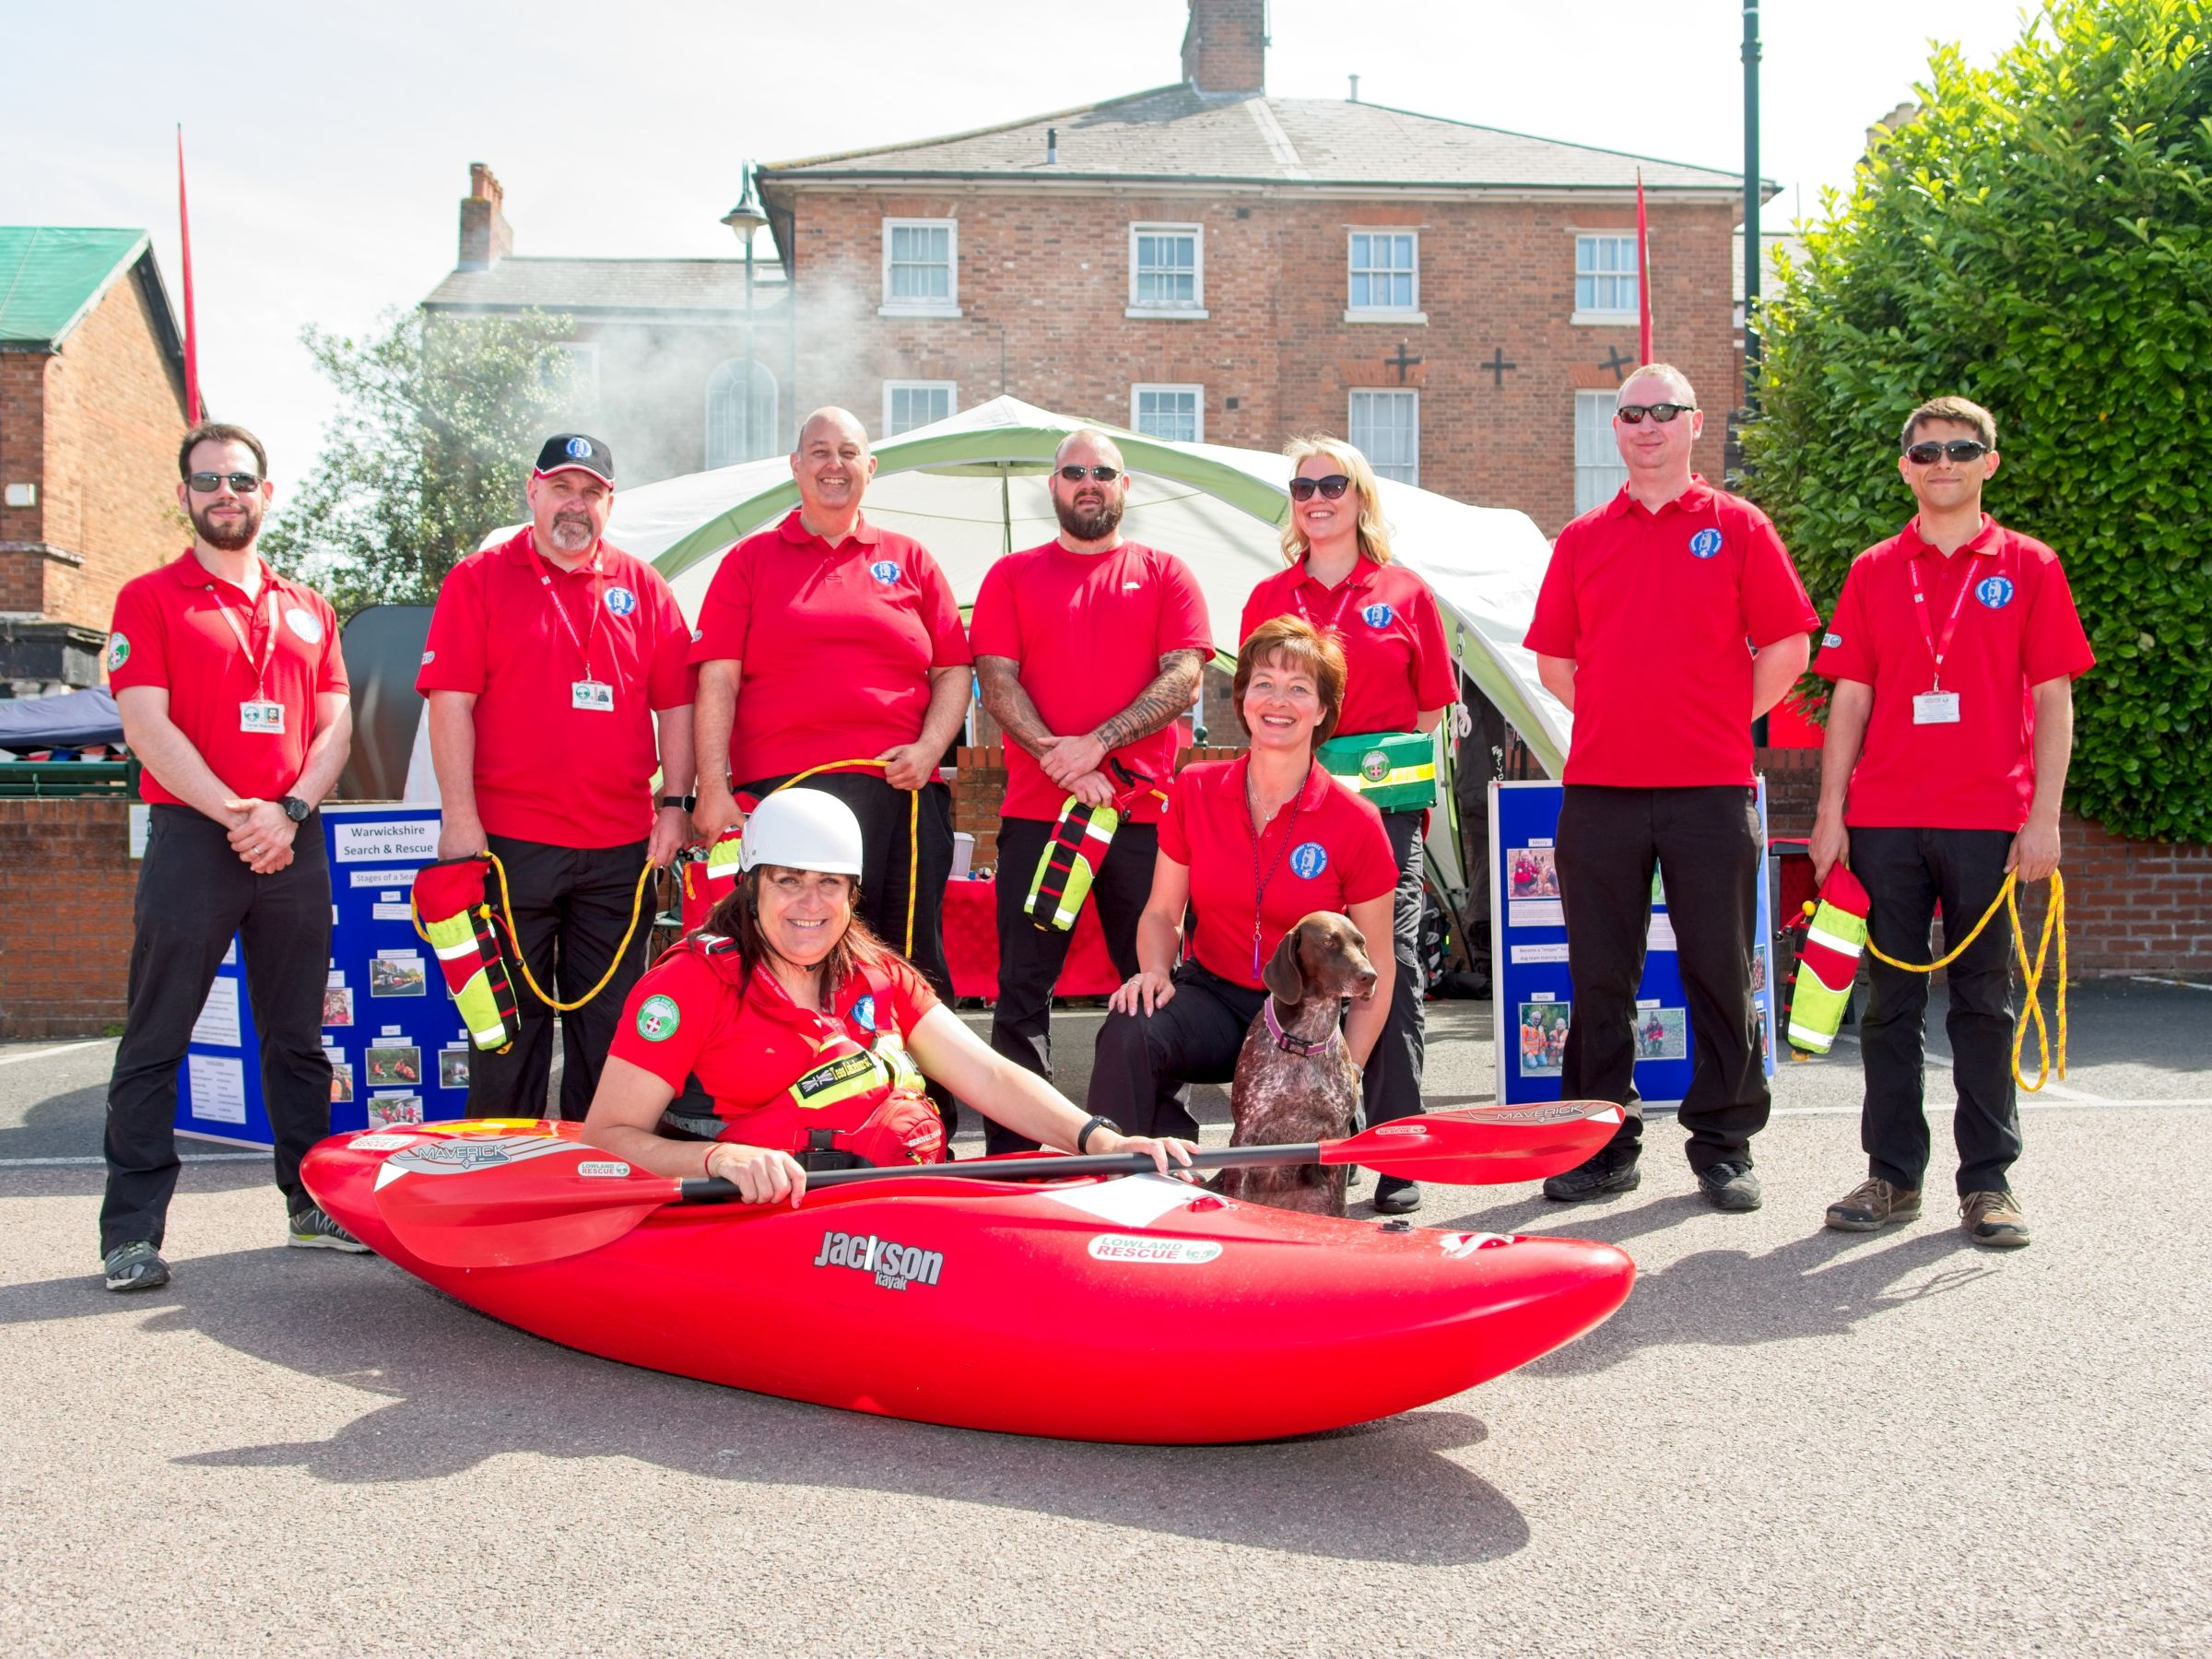 Leamington Canal Festival 2018 local rescue team pose for photograph